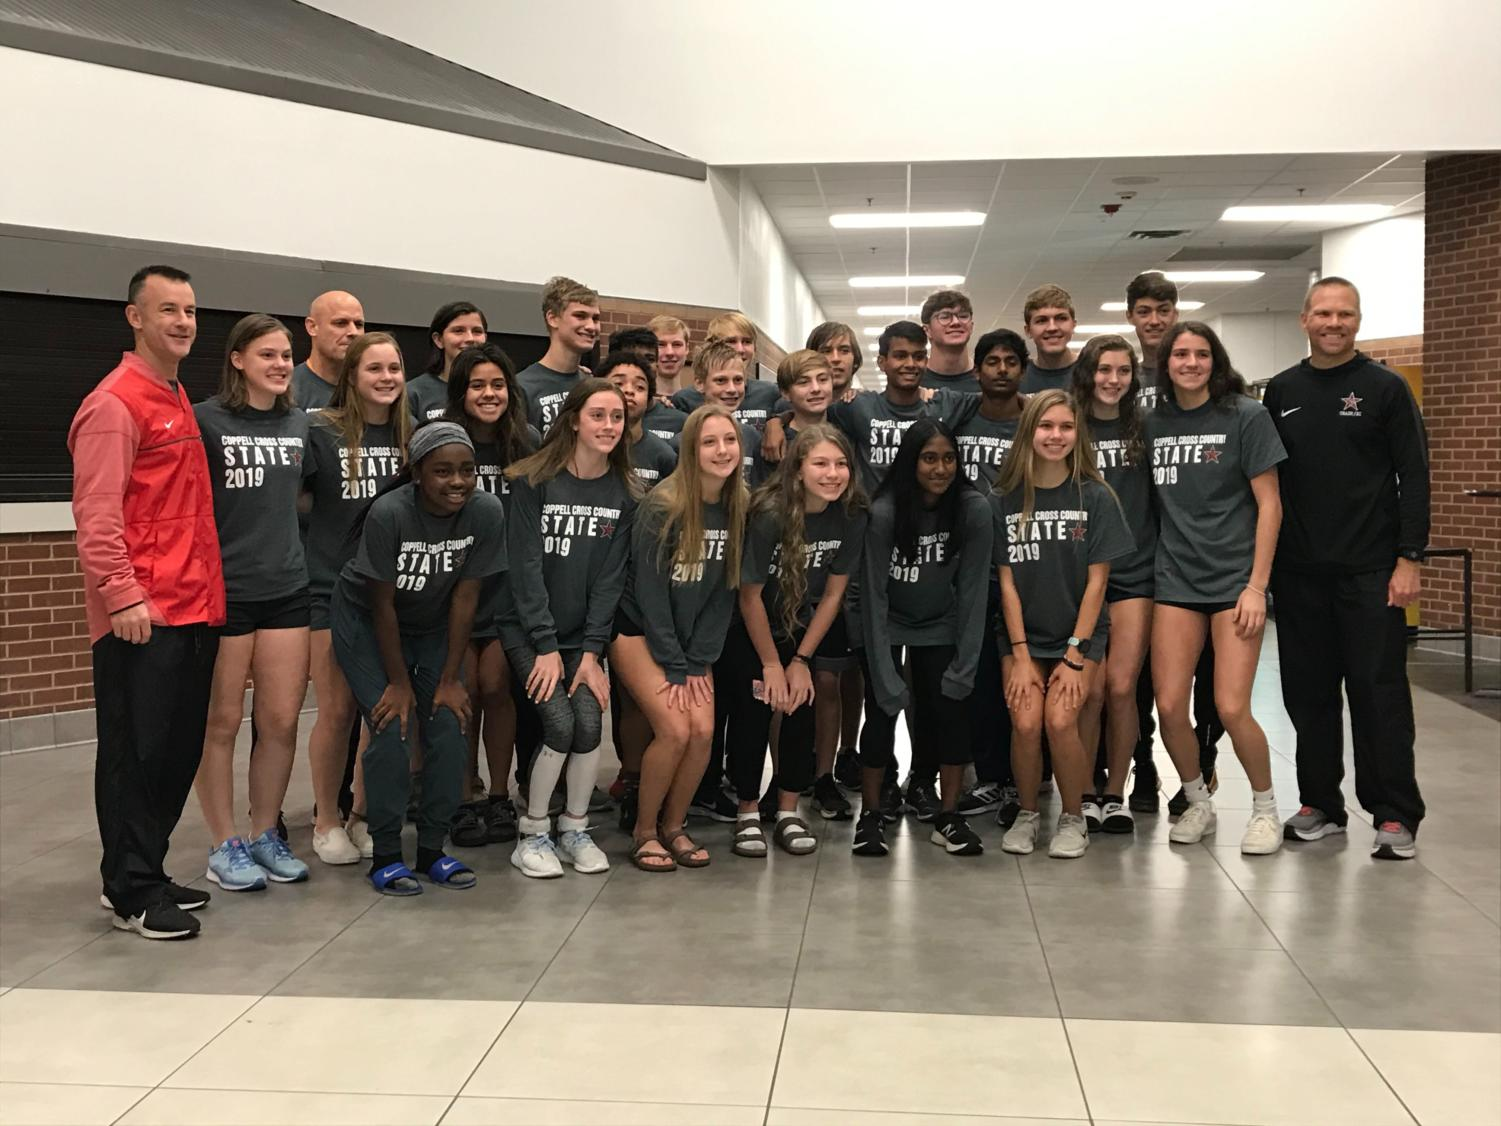 The Coppell cross country team poses for a picture this morning at their send off to the state meet. The girls begin their race on Saturday in Round Rock at 2:30 p.m. and the boys begin their's at 3:15 p.m.